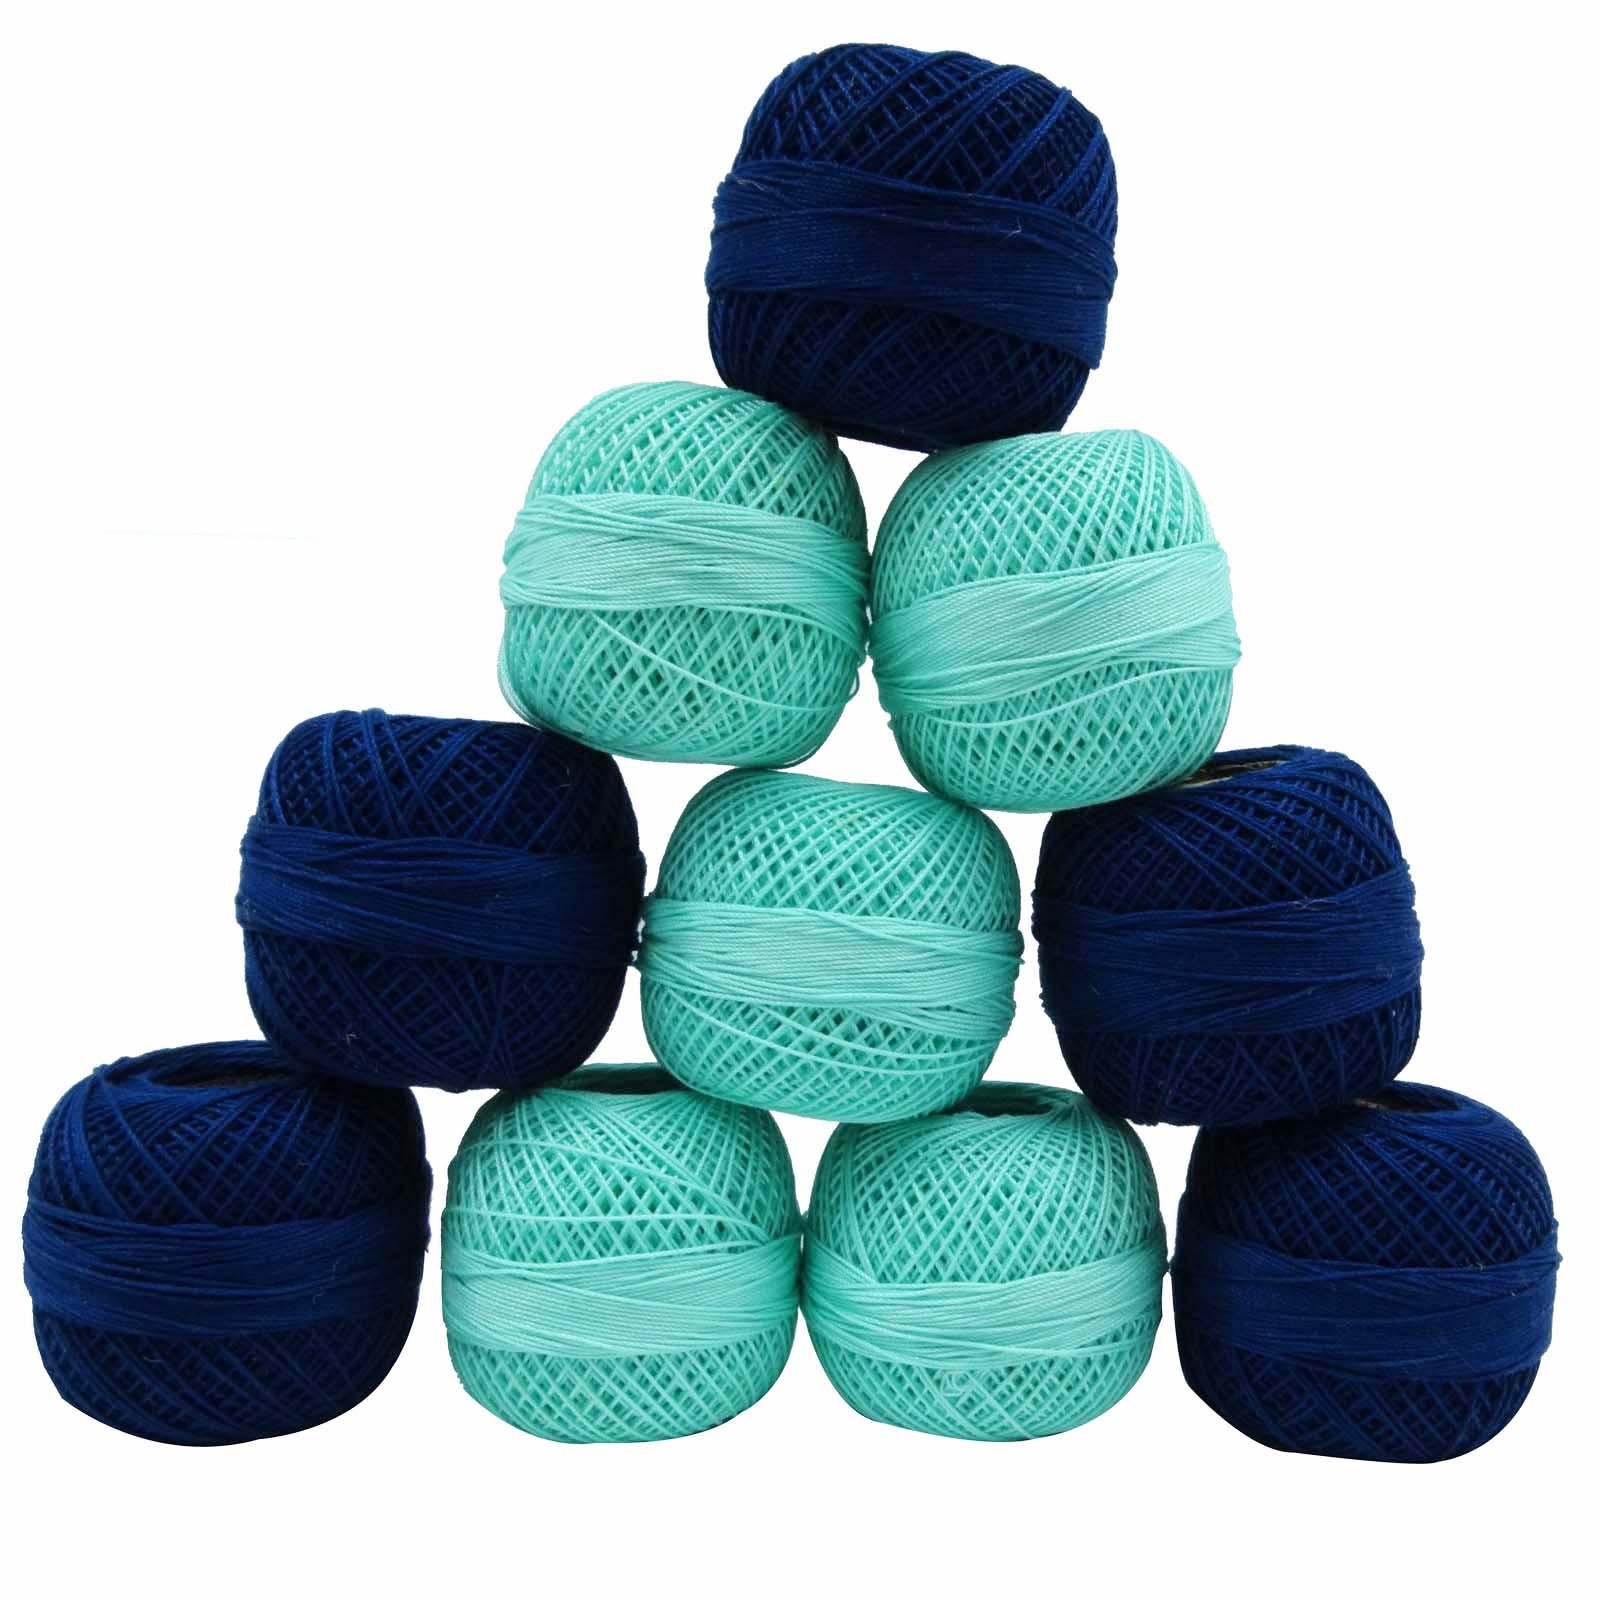 Inspirational Crochet Cotton Yarn Skein Mercerized Indian Emboridery Crochet Cotton Thread Of New 50 Pics Crochet Cotton Thread